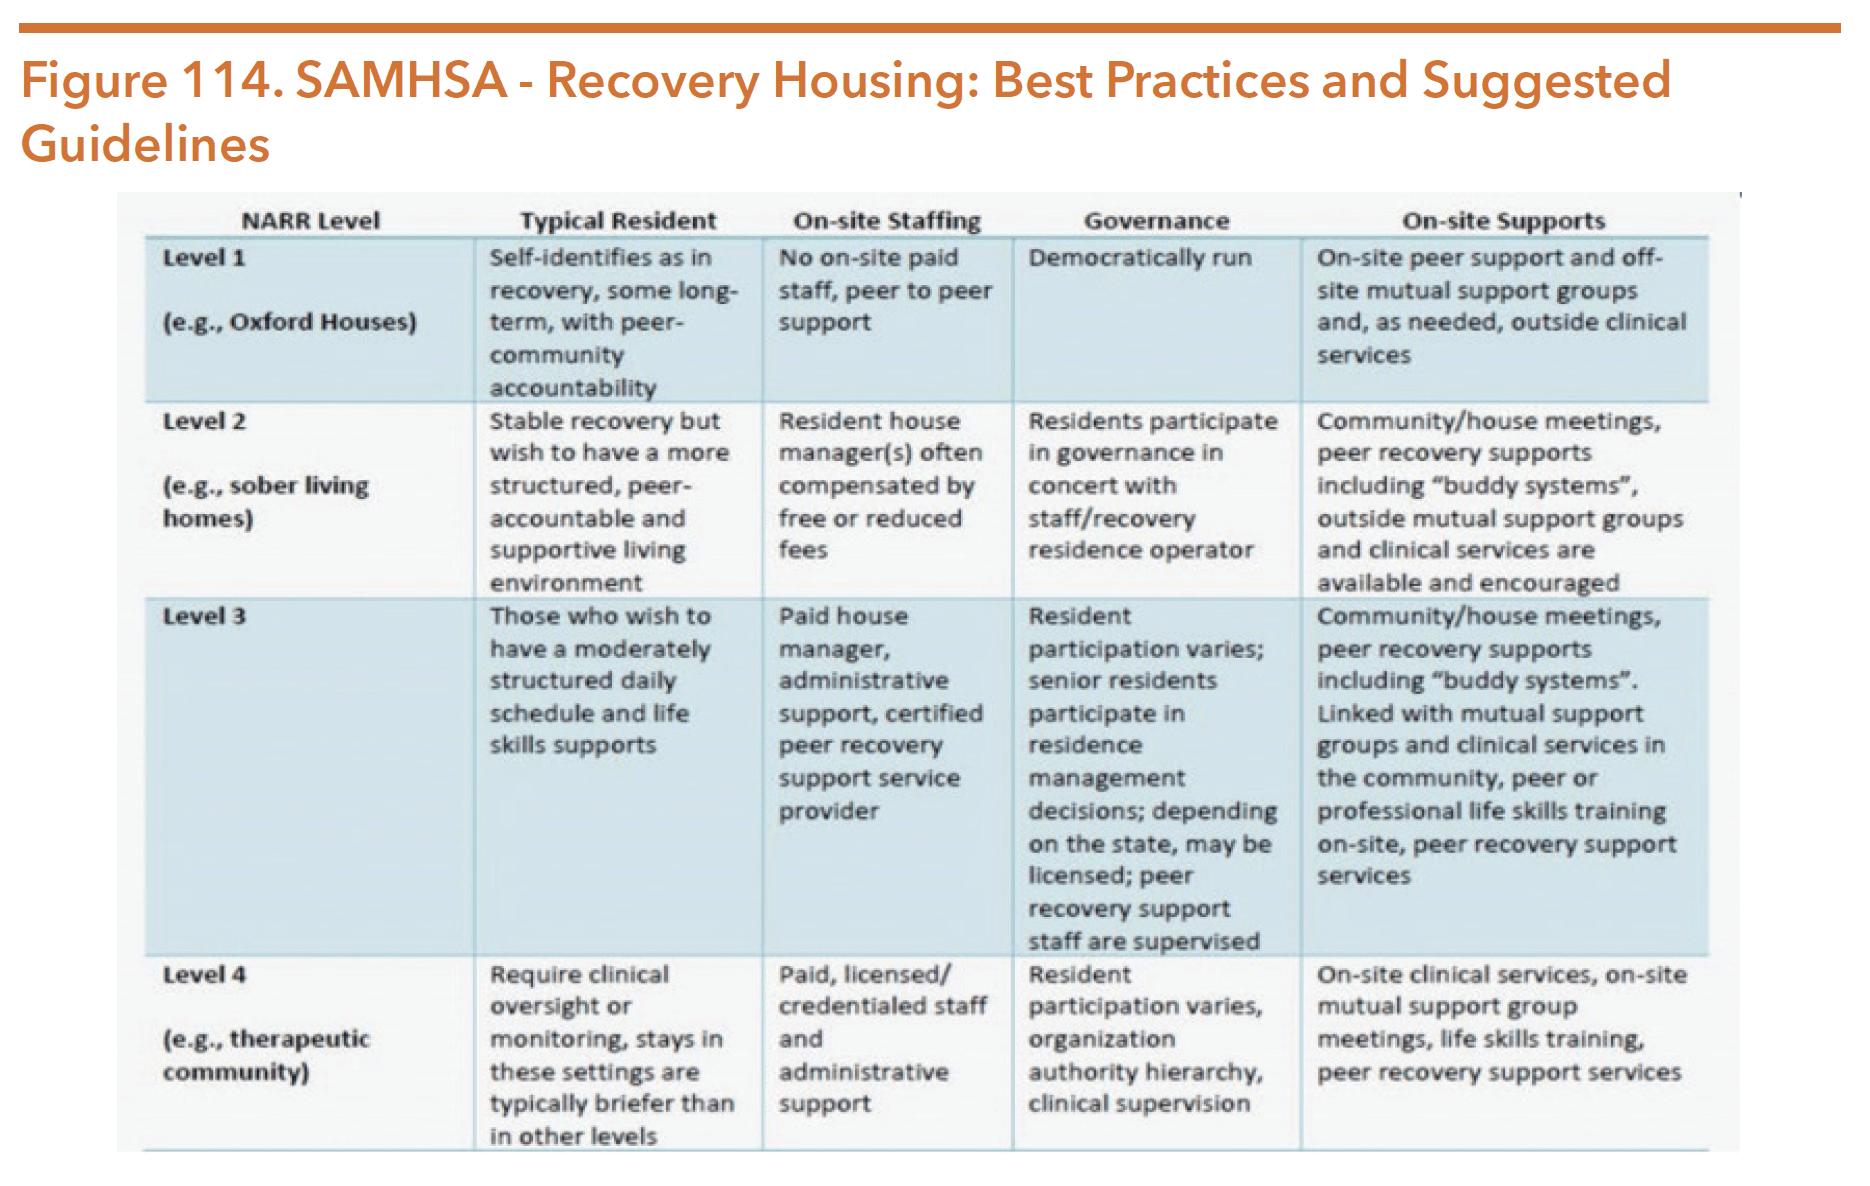 Figure 114. SAMHSA - Recovery Housing: Best Practices and Suggested Guidelines